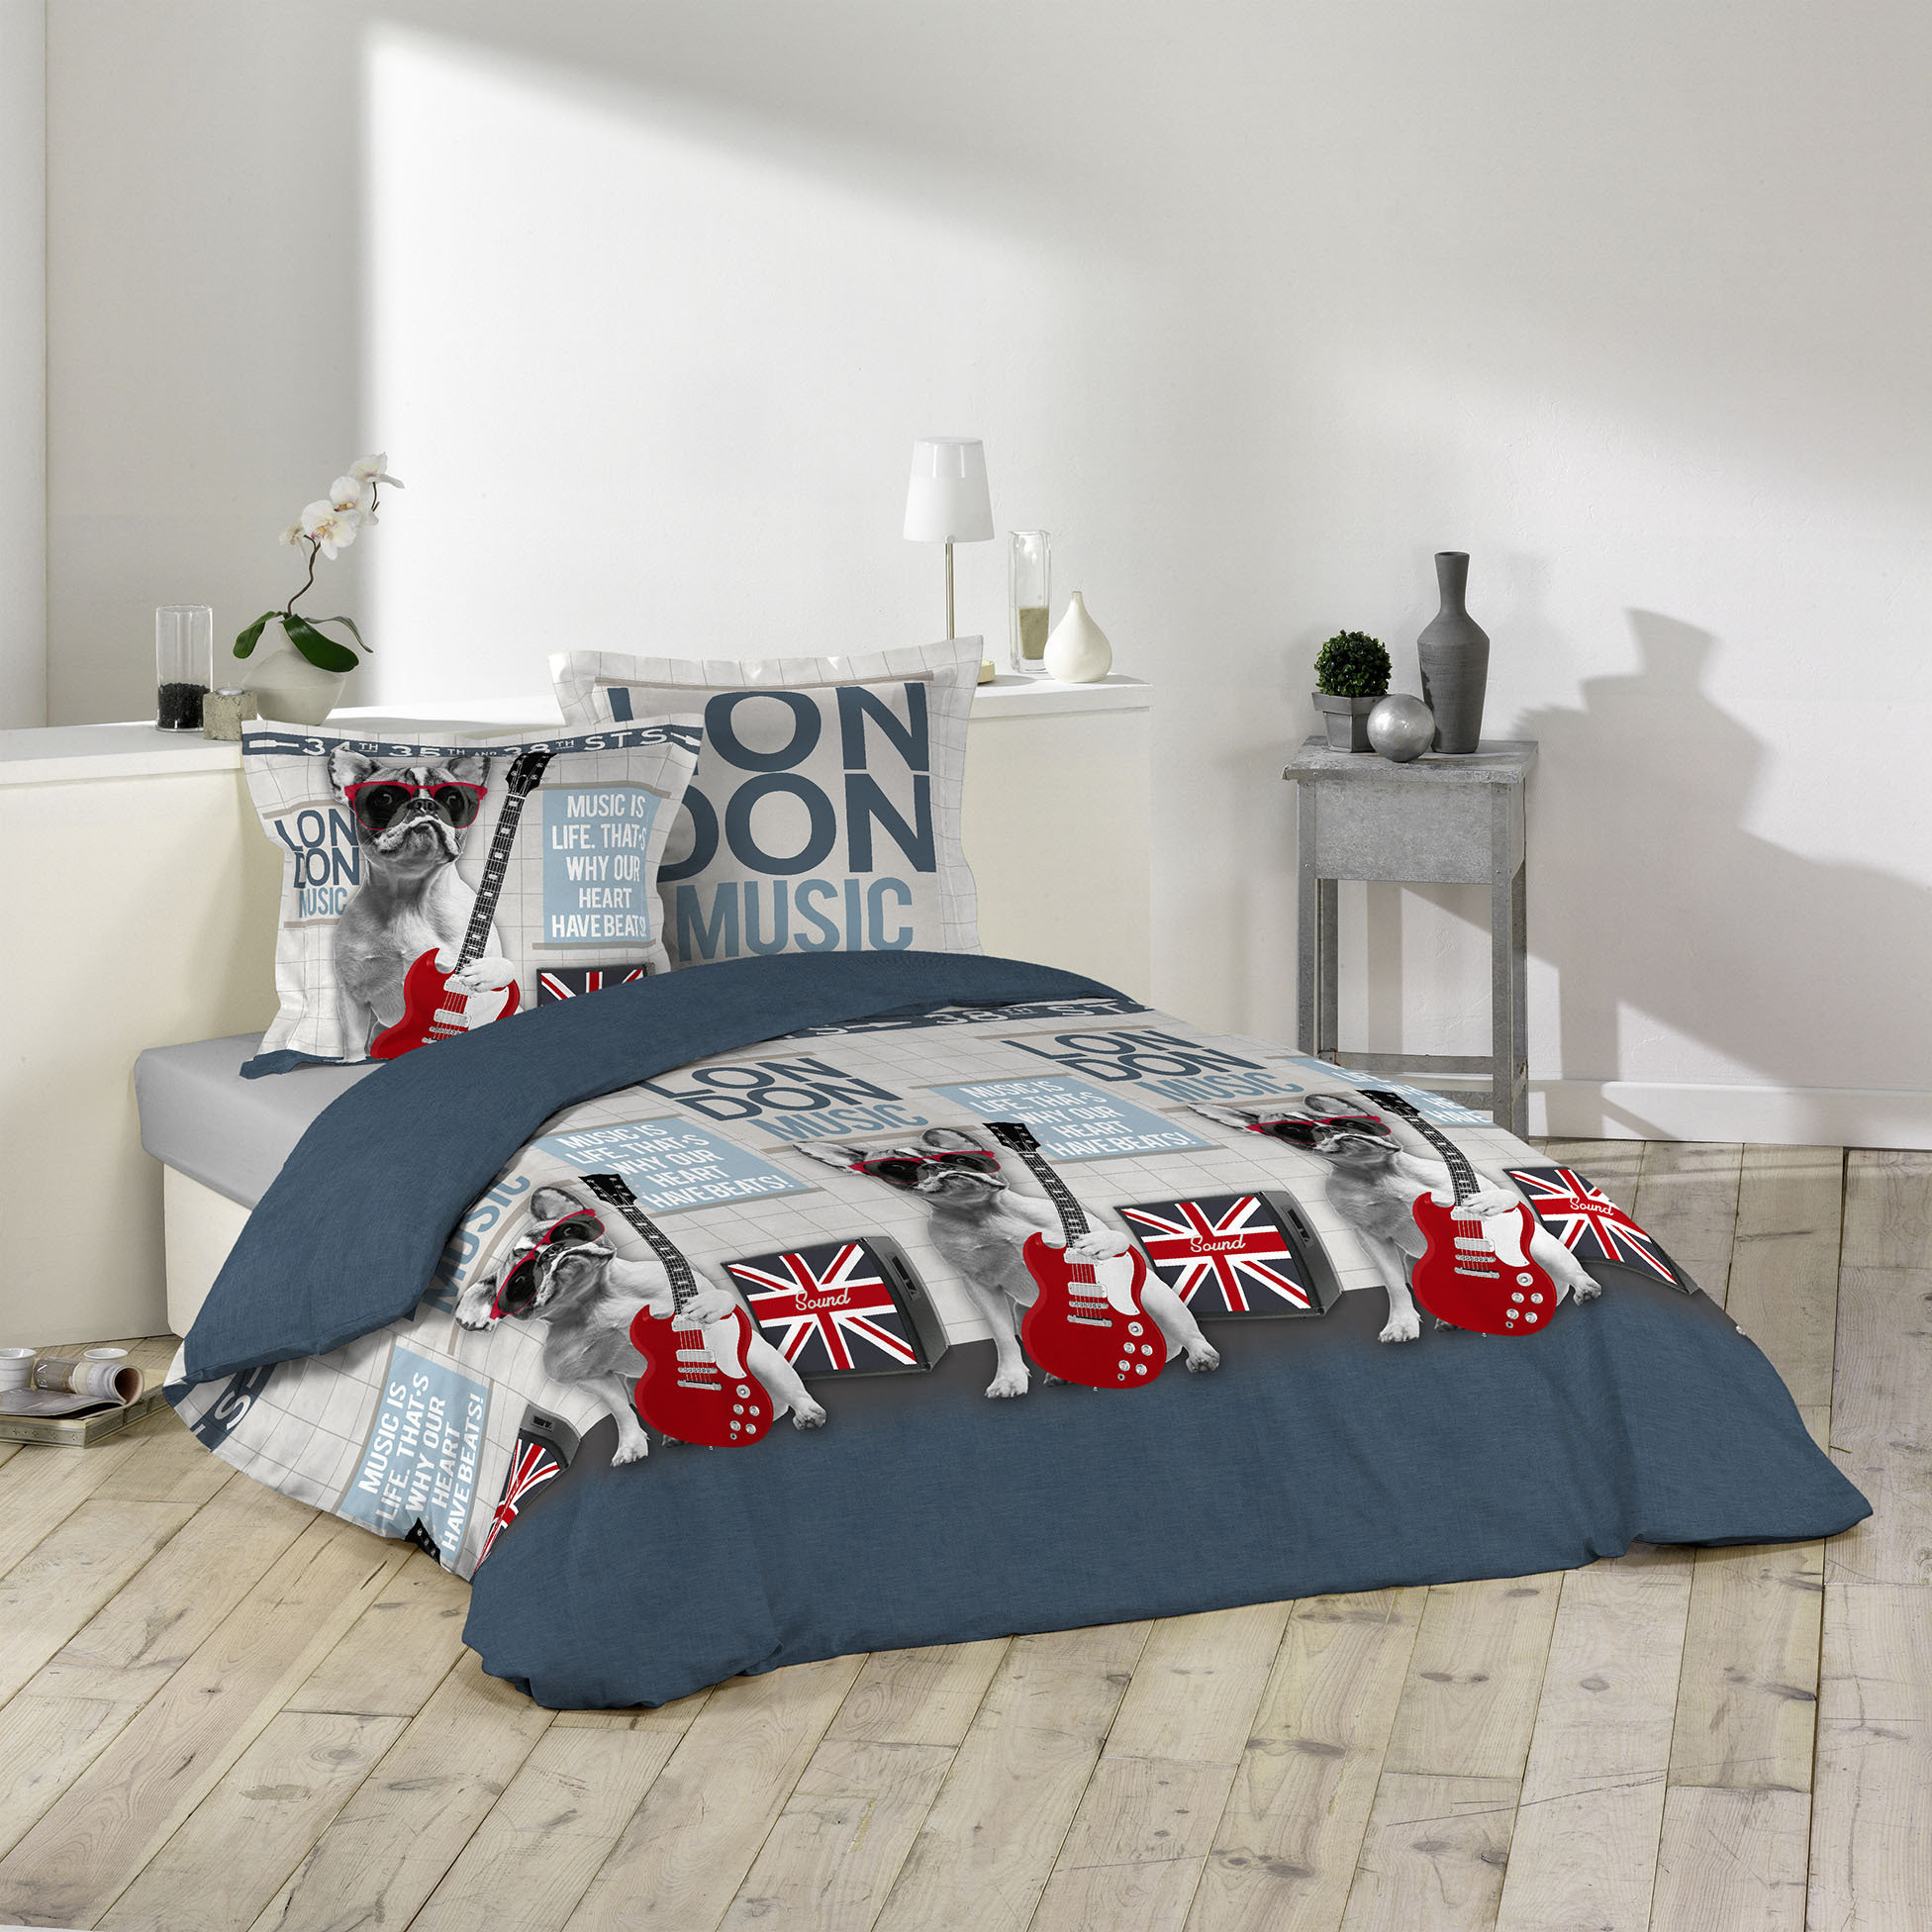 3tlg bettw sche london 240x220 franz sische bulldogge bett decke bergr e 4059865005510 ebay. Black Bedroom Furniture Sets. Home Design Ideas